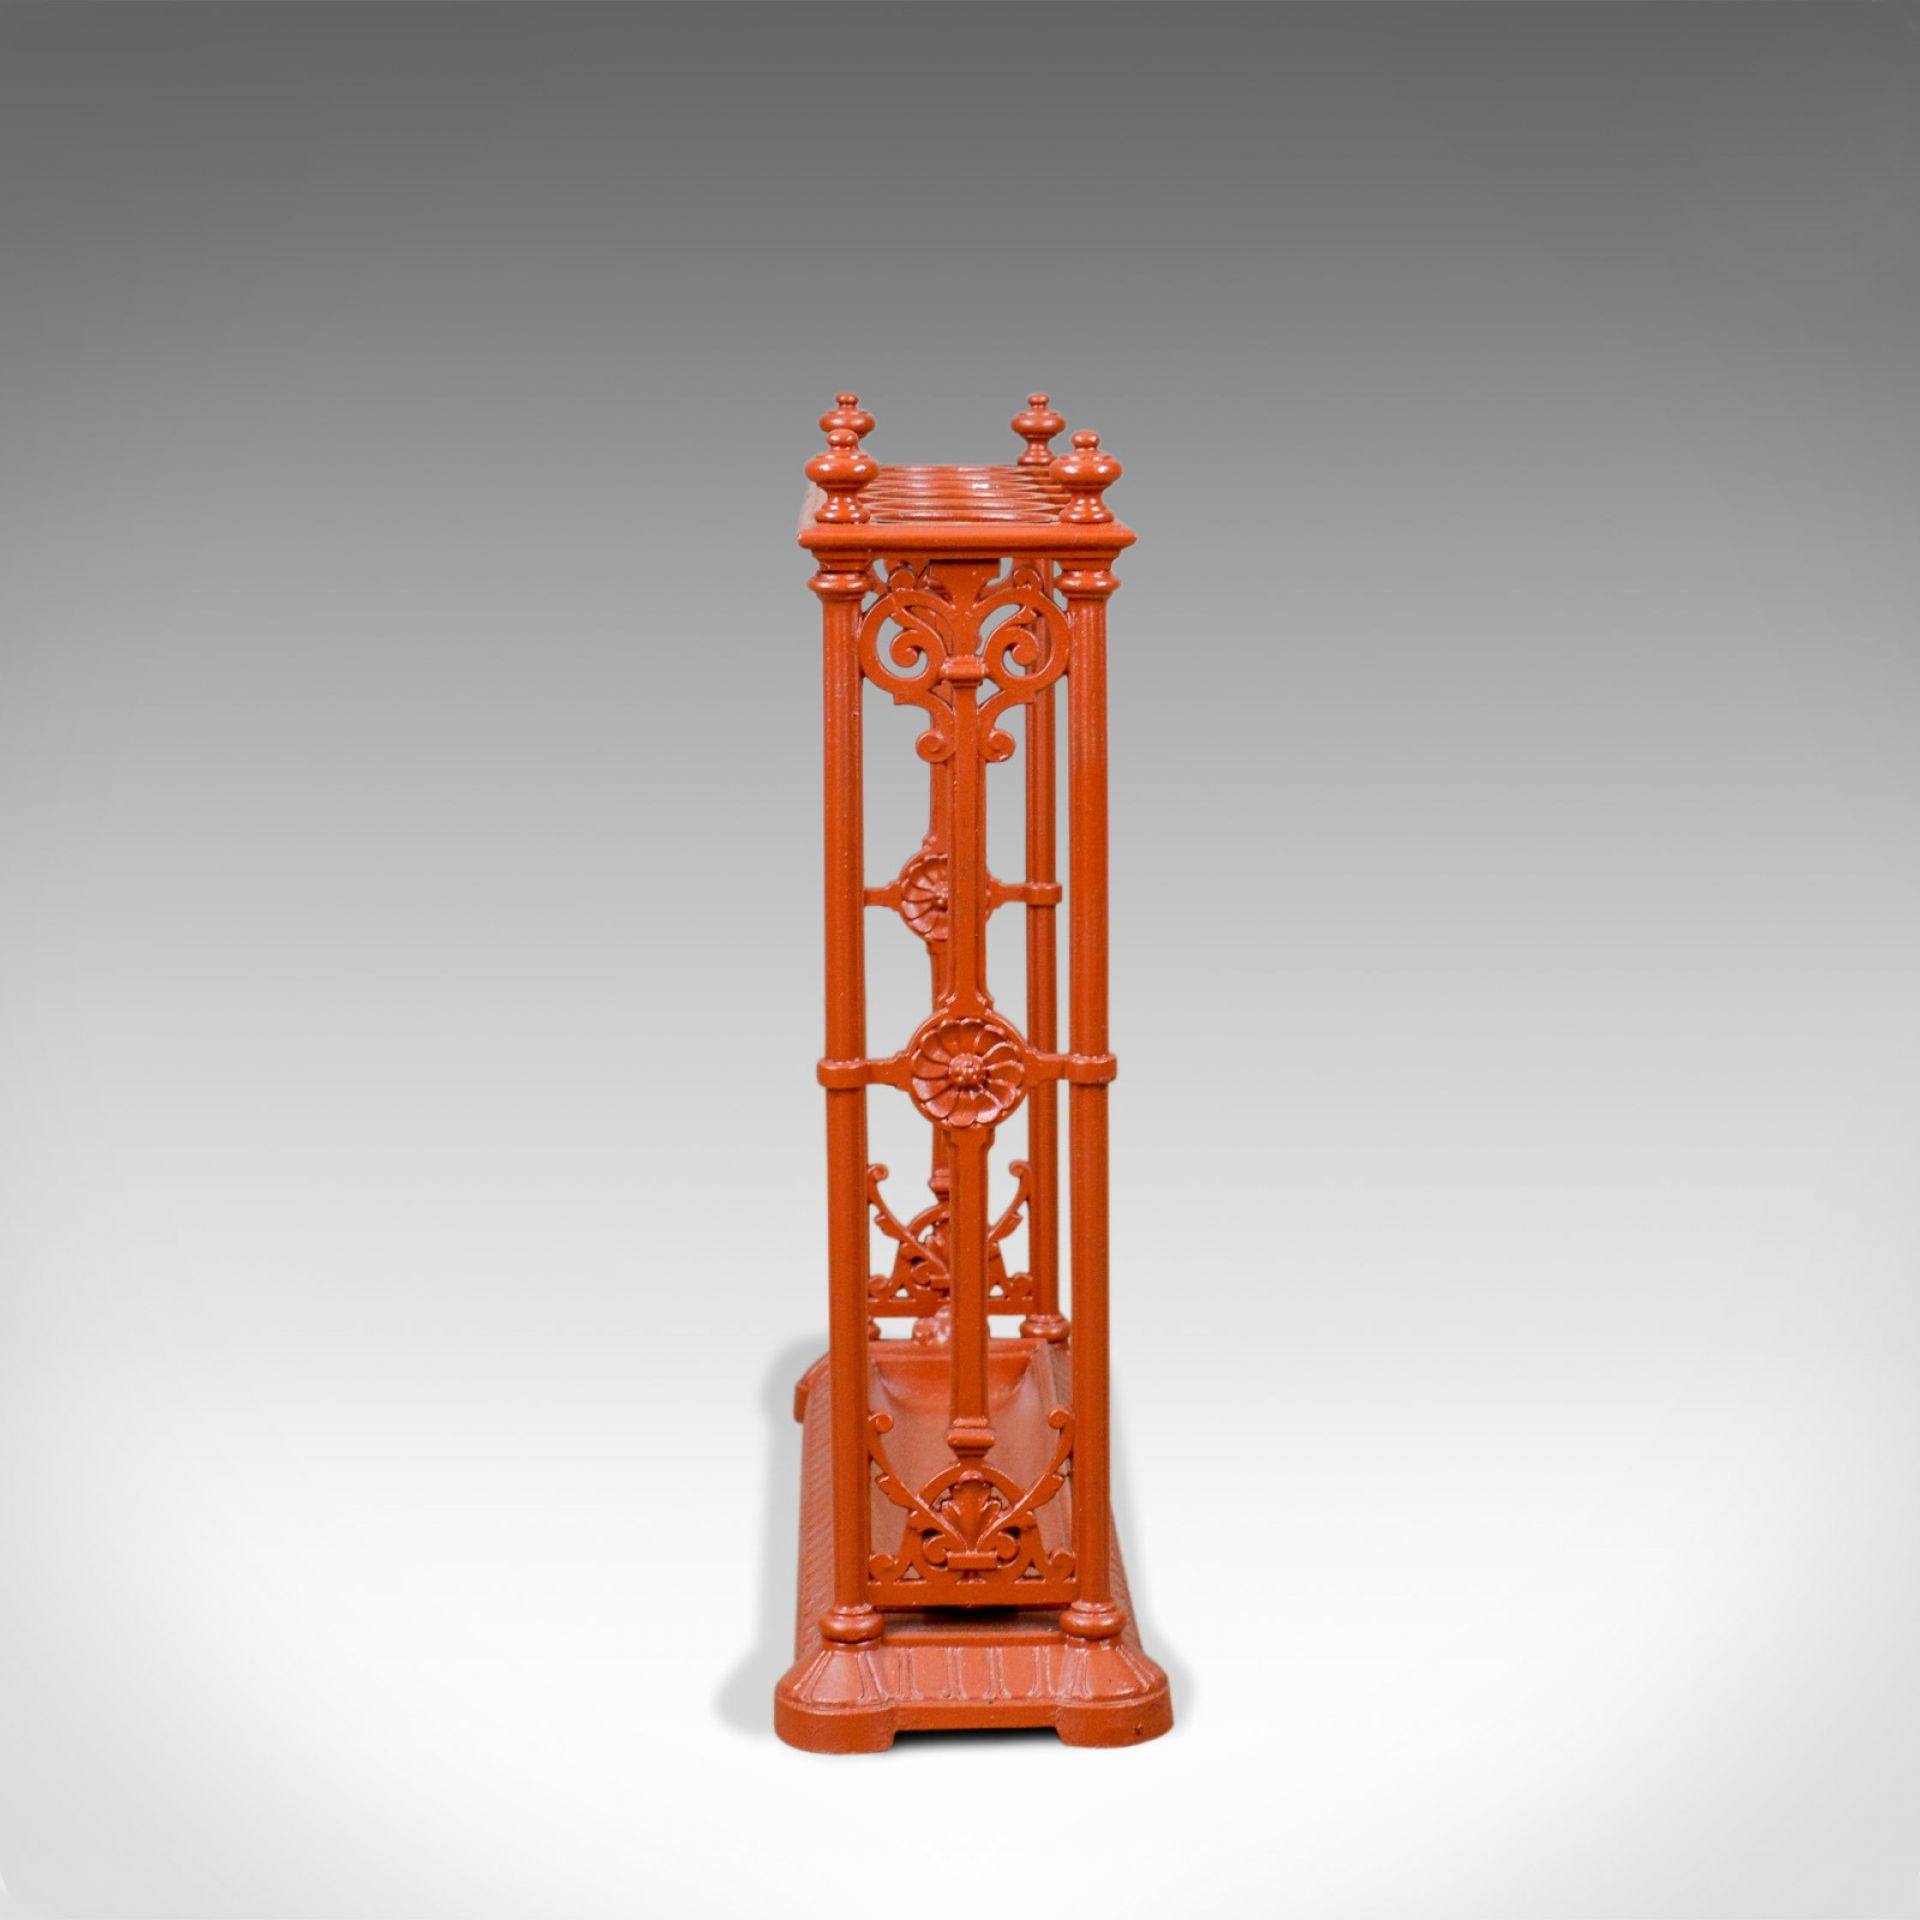 Antique Umbrella Stand, English, Victorian, Coalbrookdale, Hall, Stick, c.1890